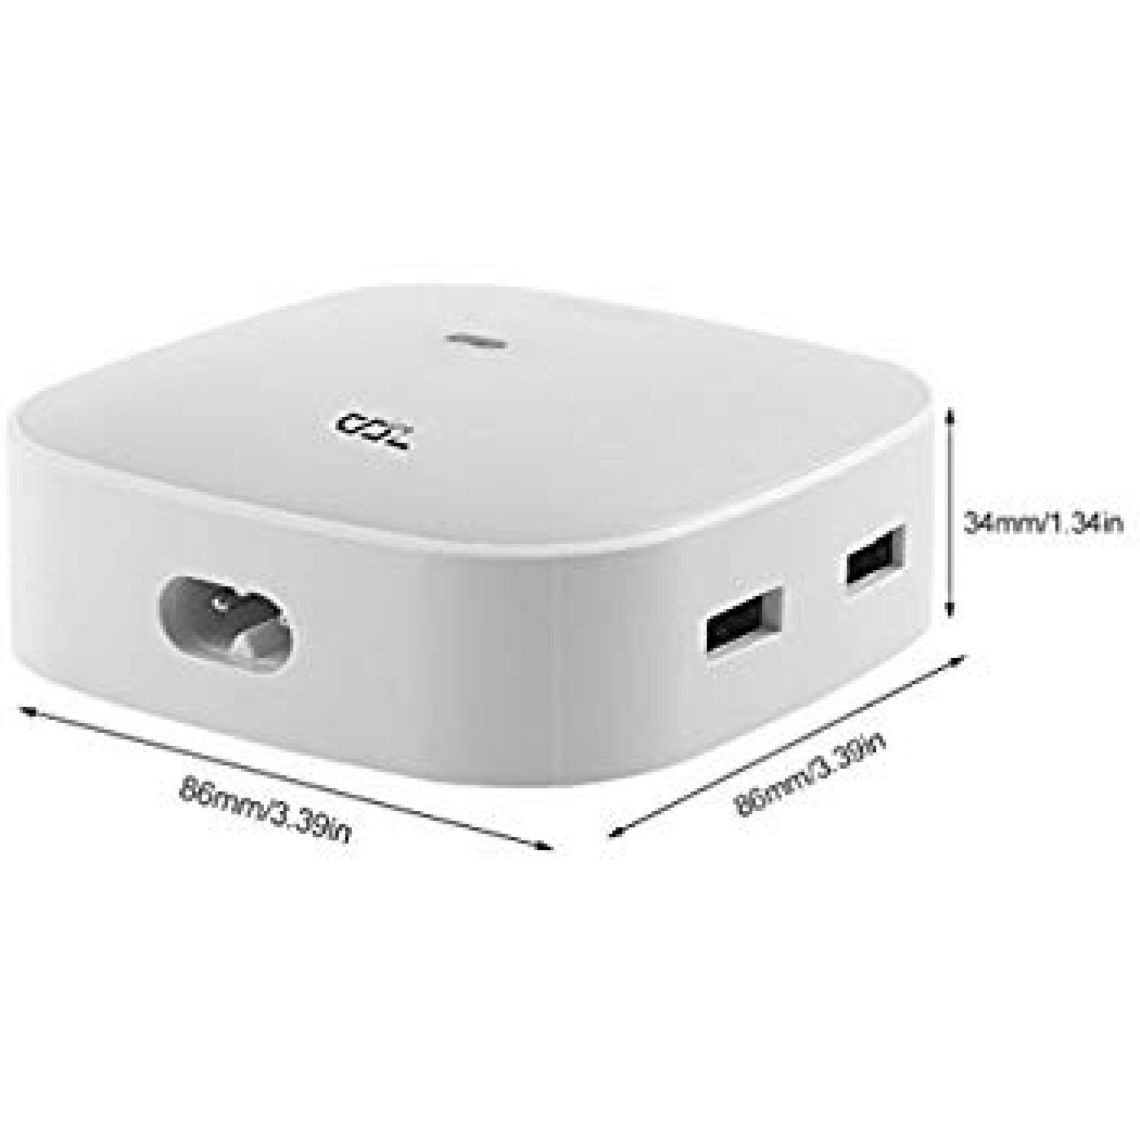 Amazon.com: Desktop USB Charging Station with Gesure Control by HOBFU 25W 2.4A 4-Port USB Charger Desktop Charger with iSmart Technology: Cell Phones & Accessories